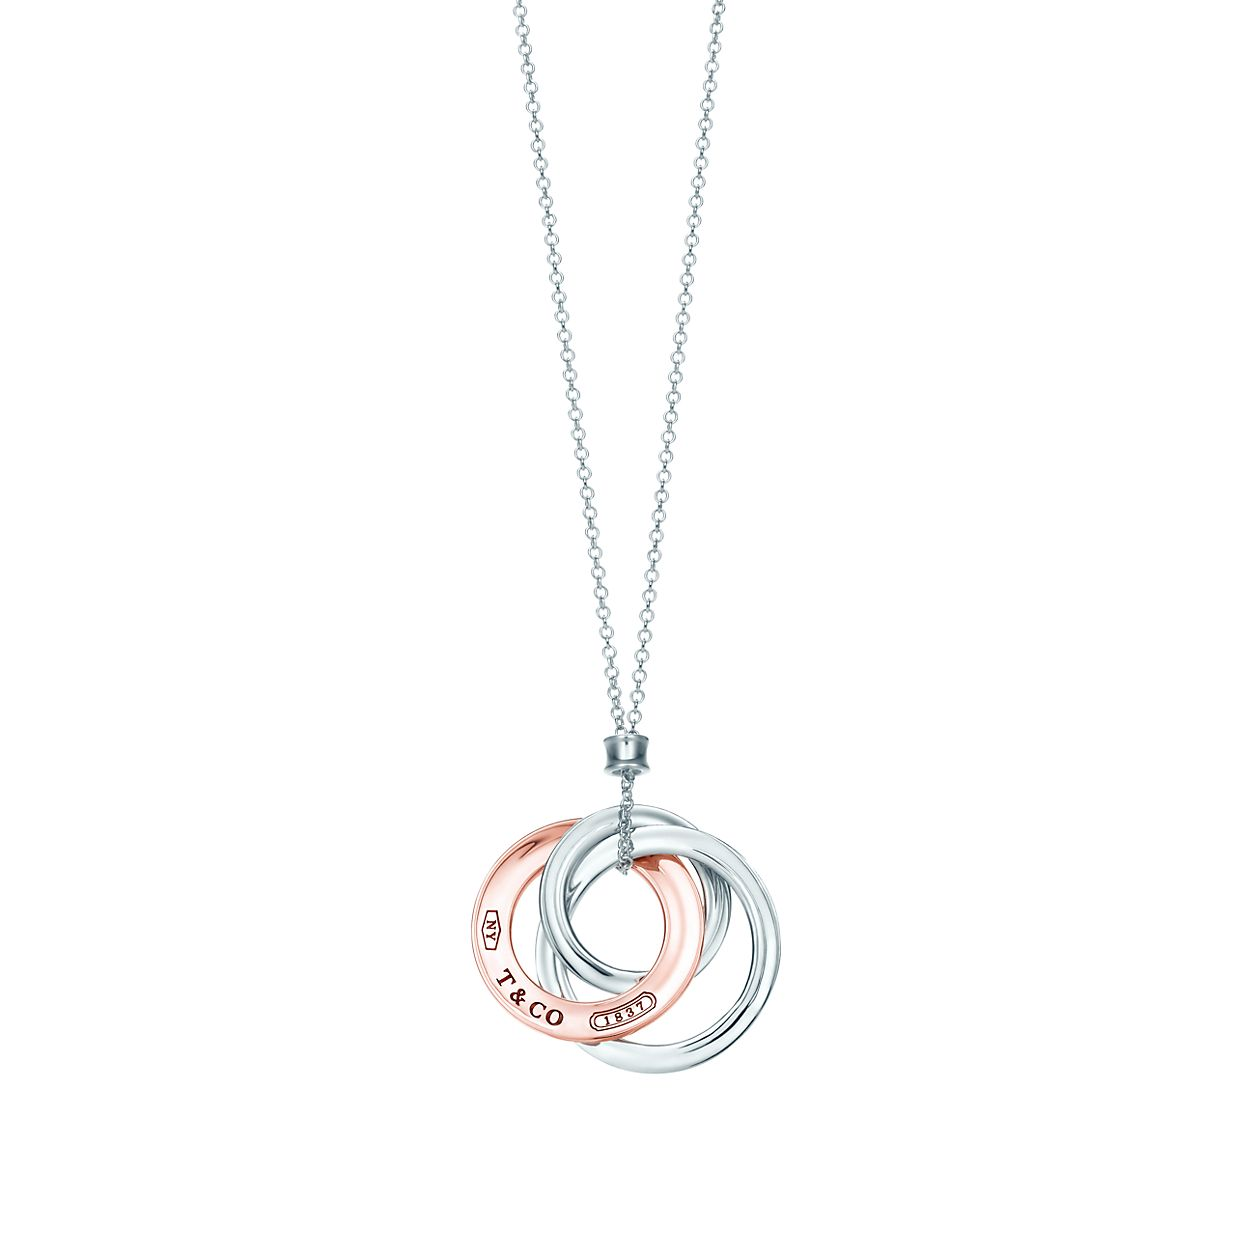 Tiffany 1837 interlocking circles pendant in sterling silver, small Tiffany & Co.